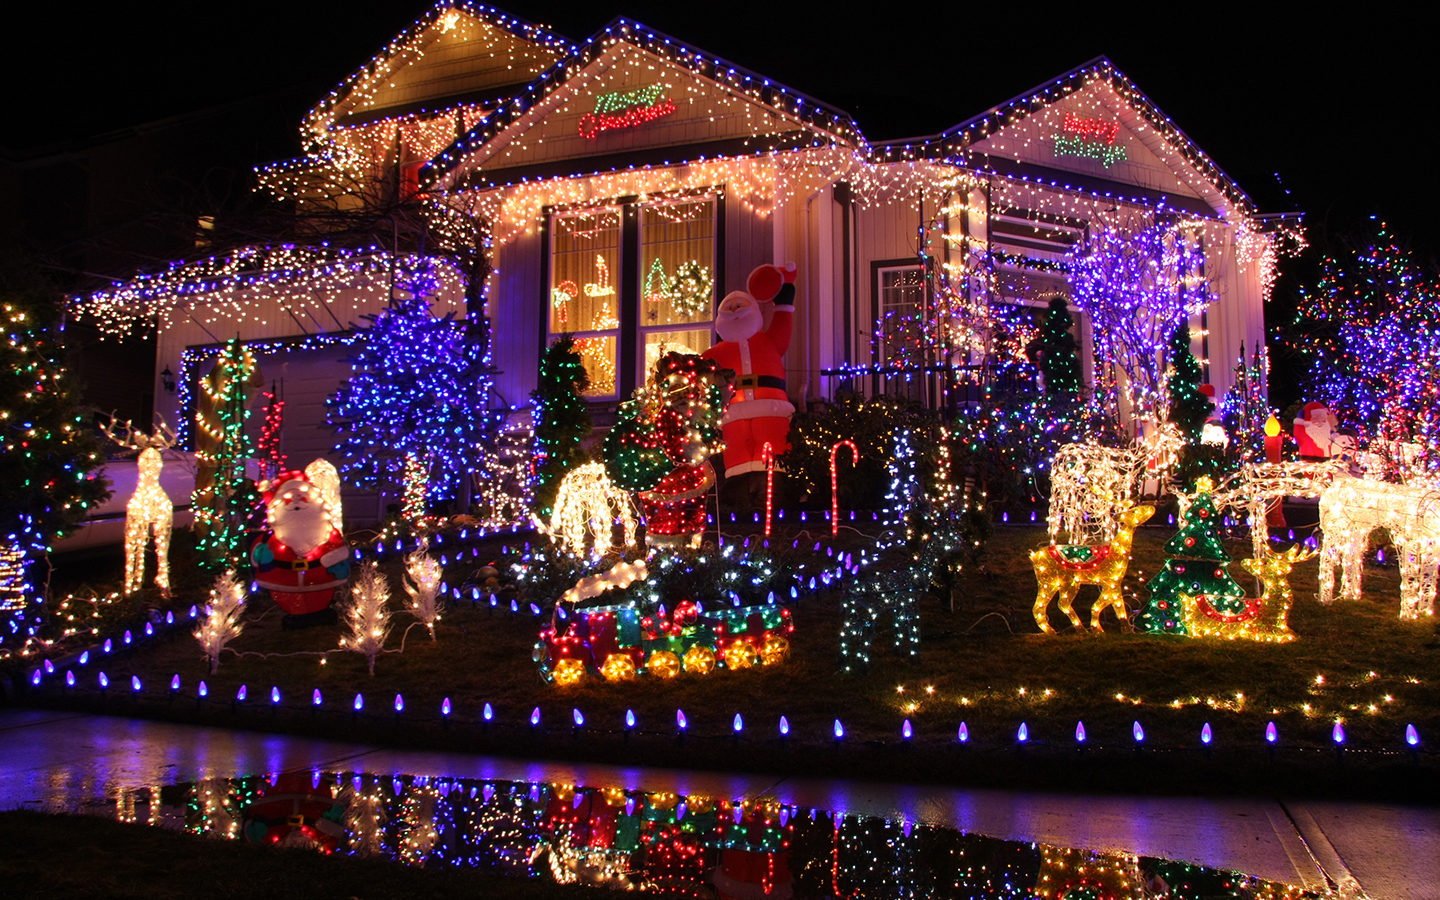 A house and lawn covered in Christmas lights of all colors